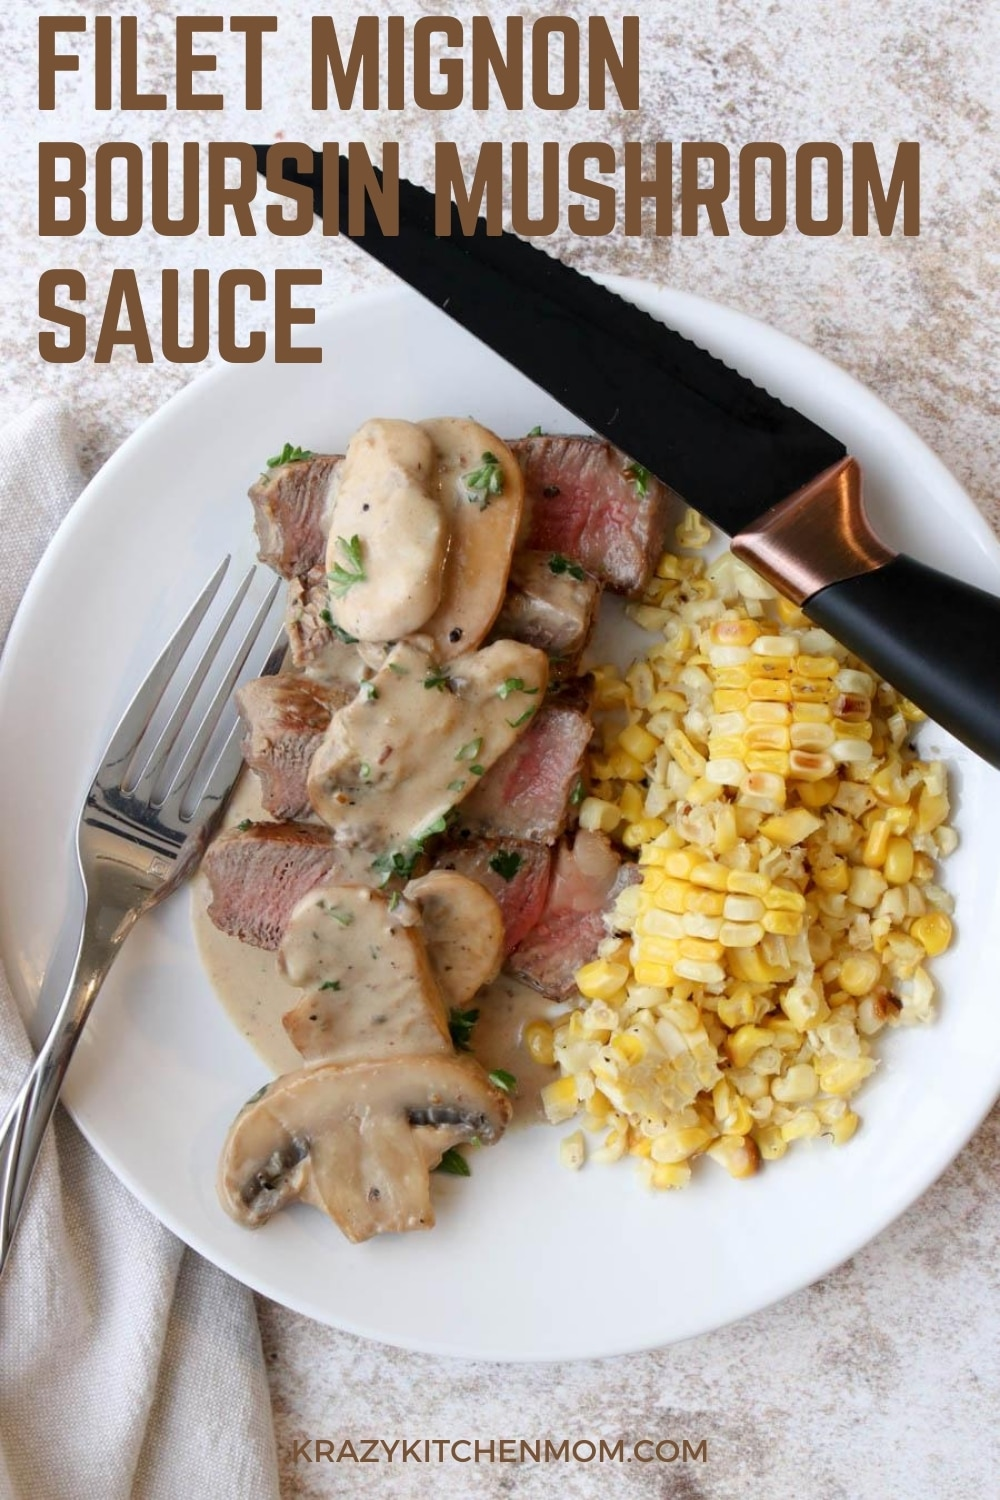 Tender filet mignon steaks smothered in a creamy, rich mushroom sauce with hints of sweet tanginess and garlic. This is a steak meal that you'd expect to find in a fancy restaurant but it's really super simple to make.  via @krazykitchenmom